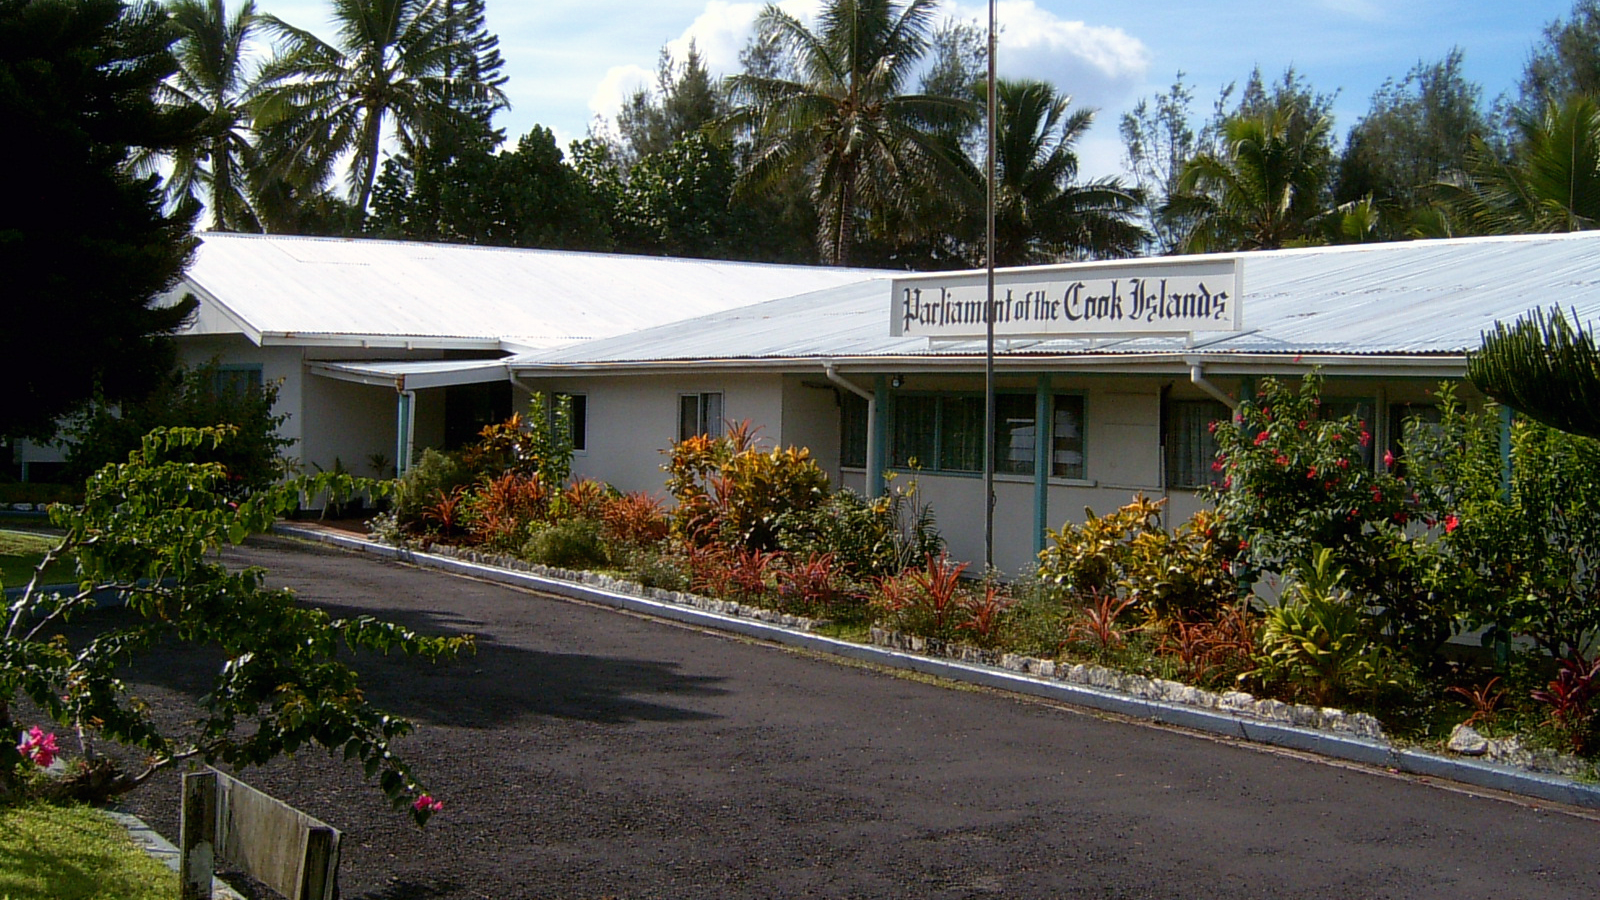 Adventist Review Online | Adventists Mark Important Milestones in the Cook Islands and Vanuatu